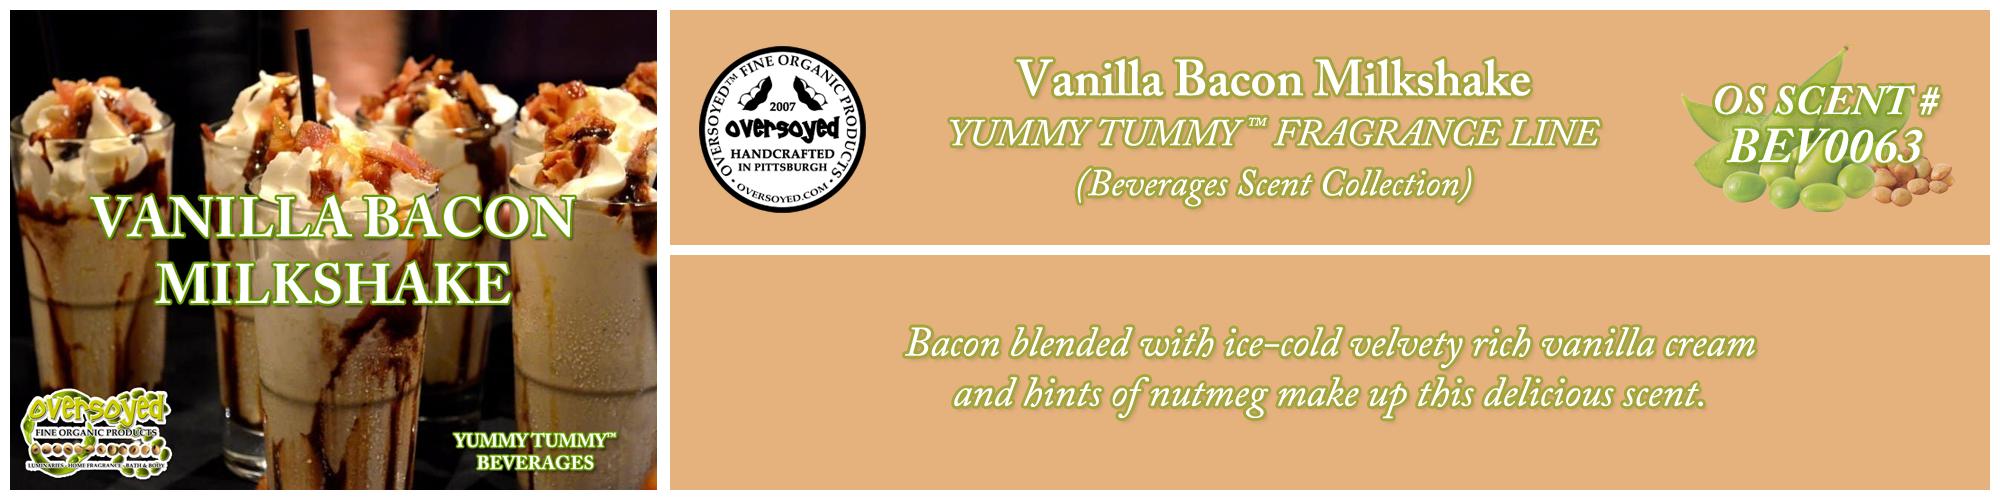 Vanilla Bacon Milkshake Handcrafted Products Collection